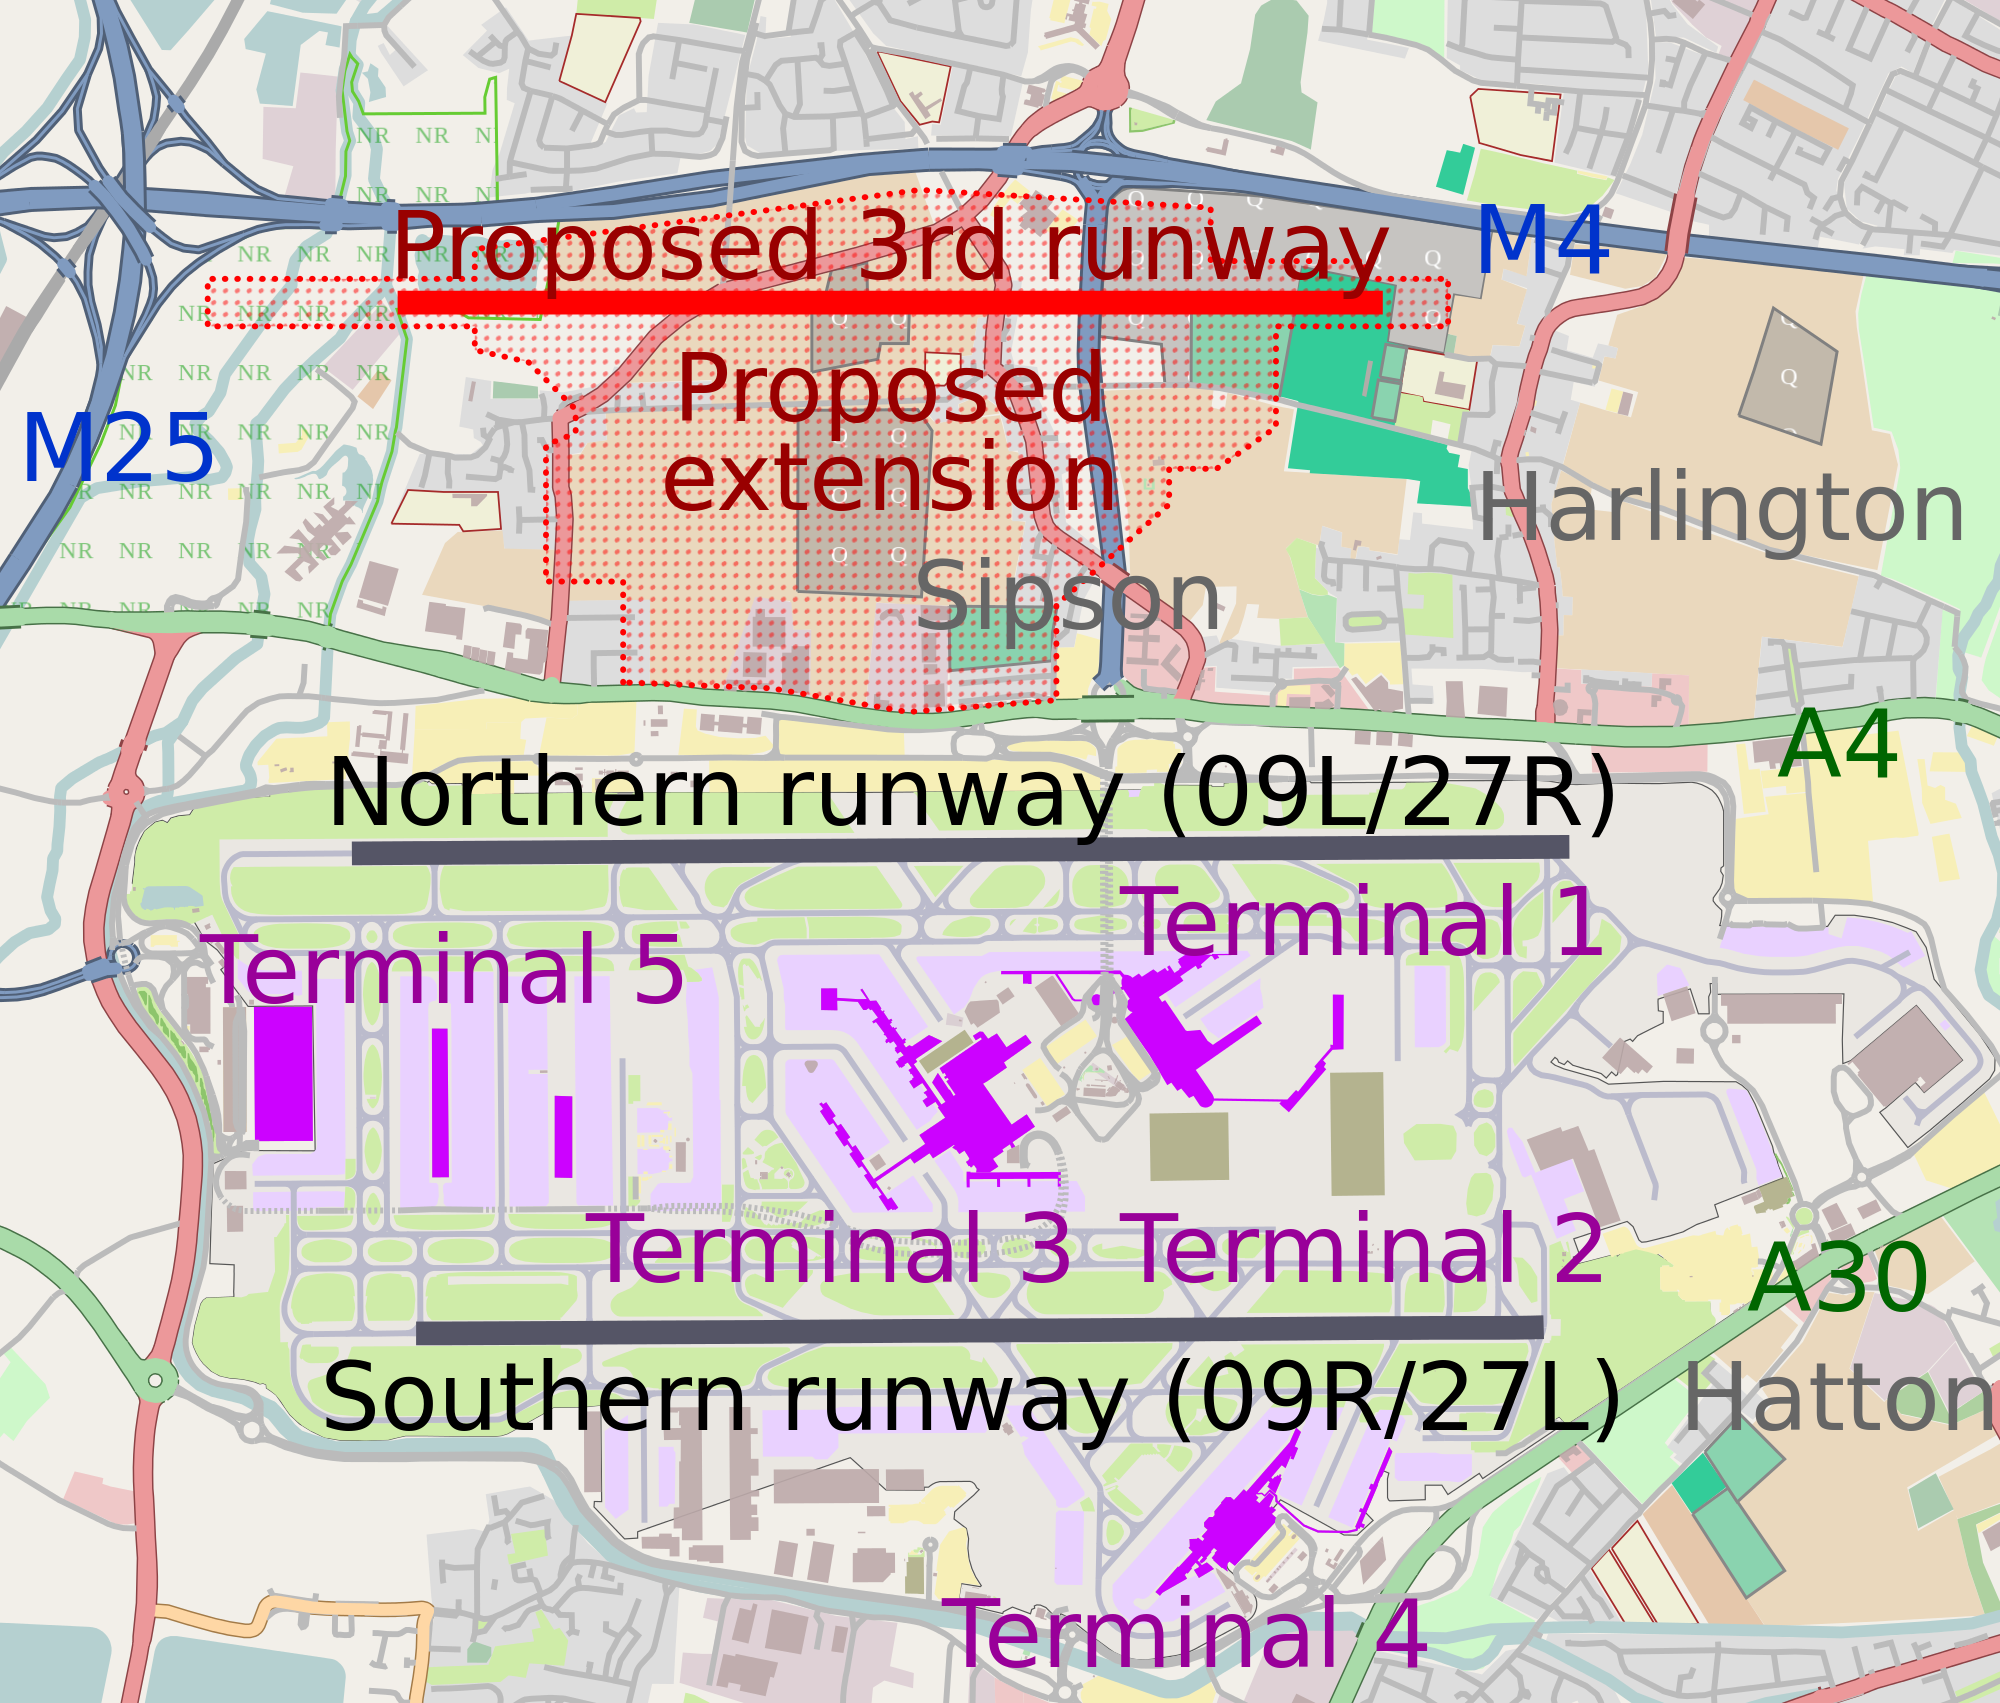 Heathrow third runway update